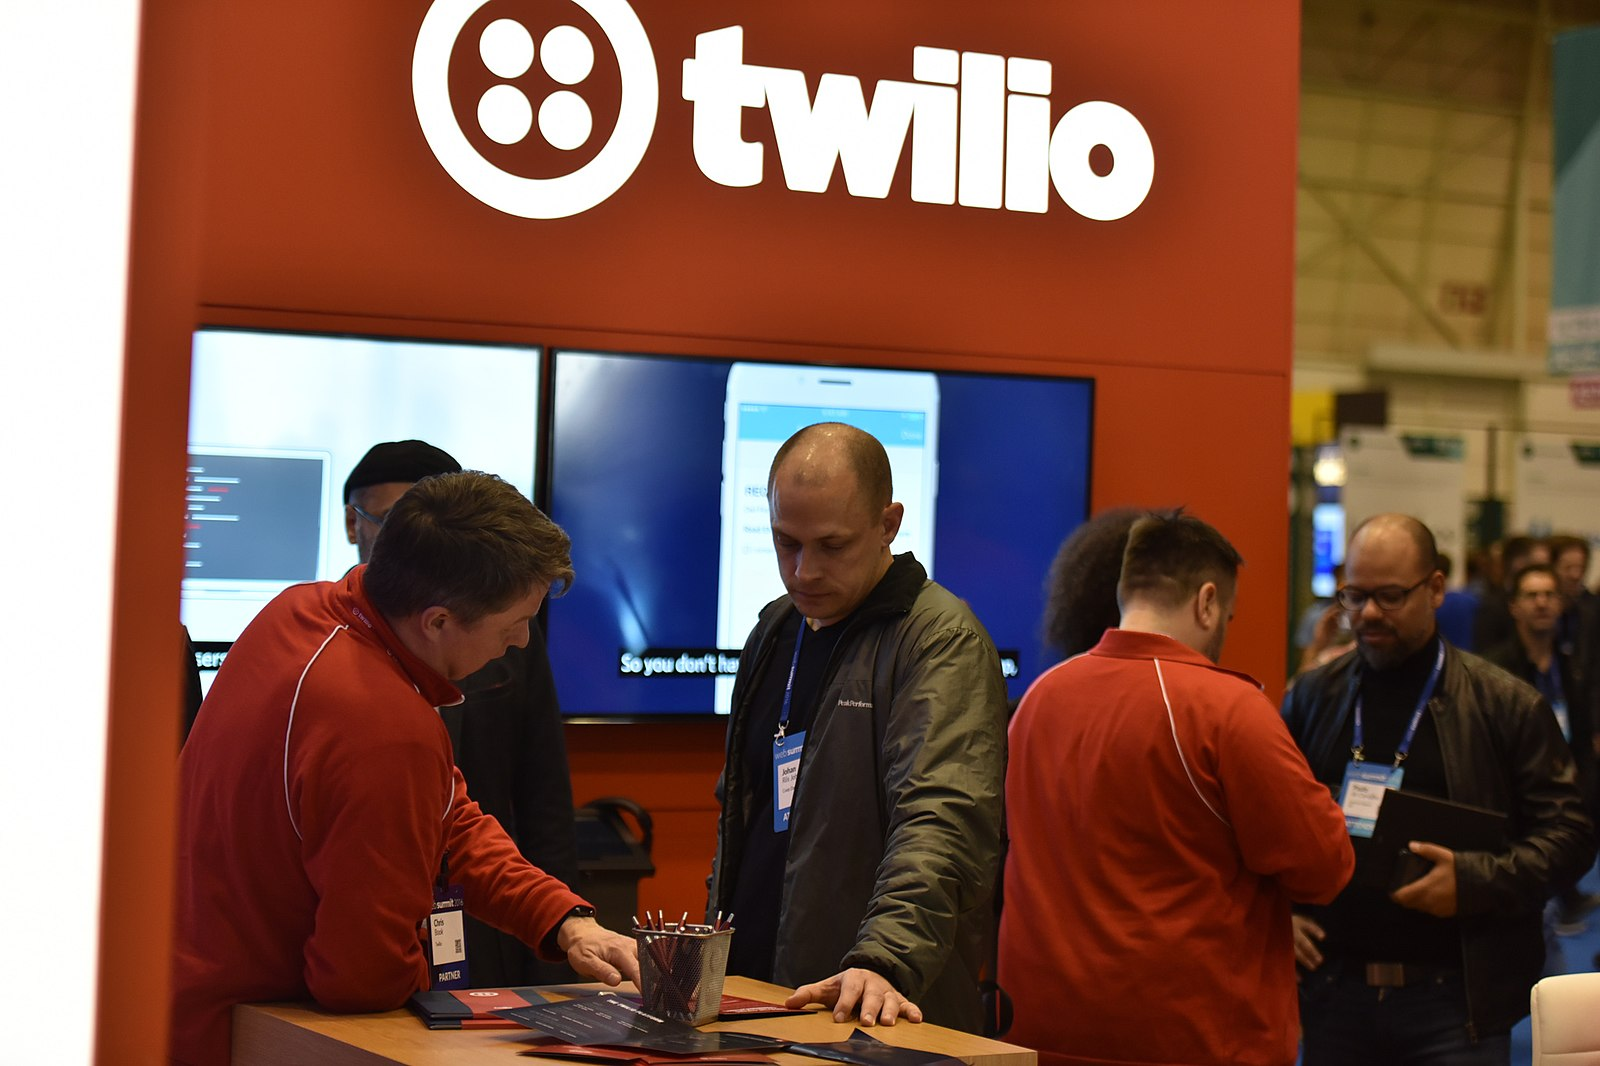 Difference Between Bandwidth and Twilio